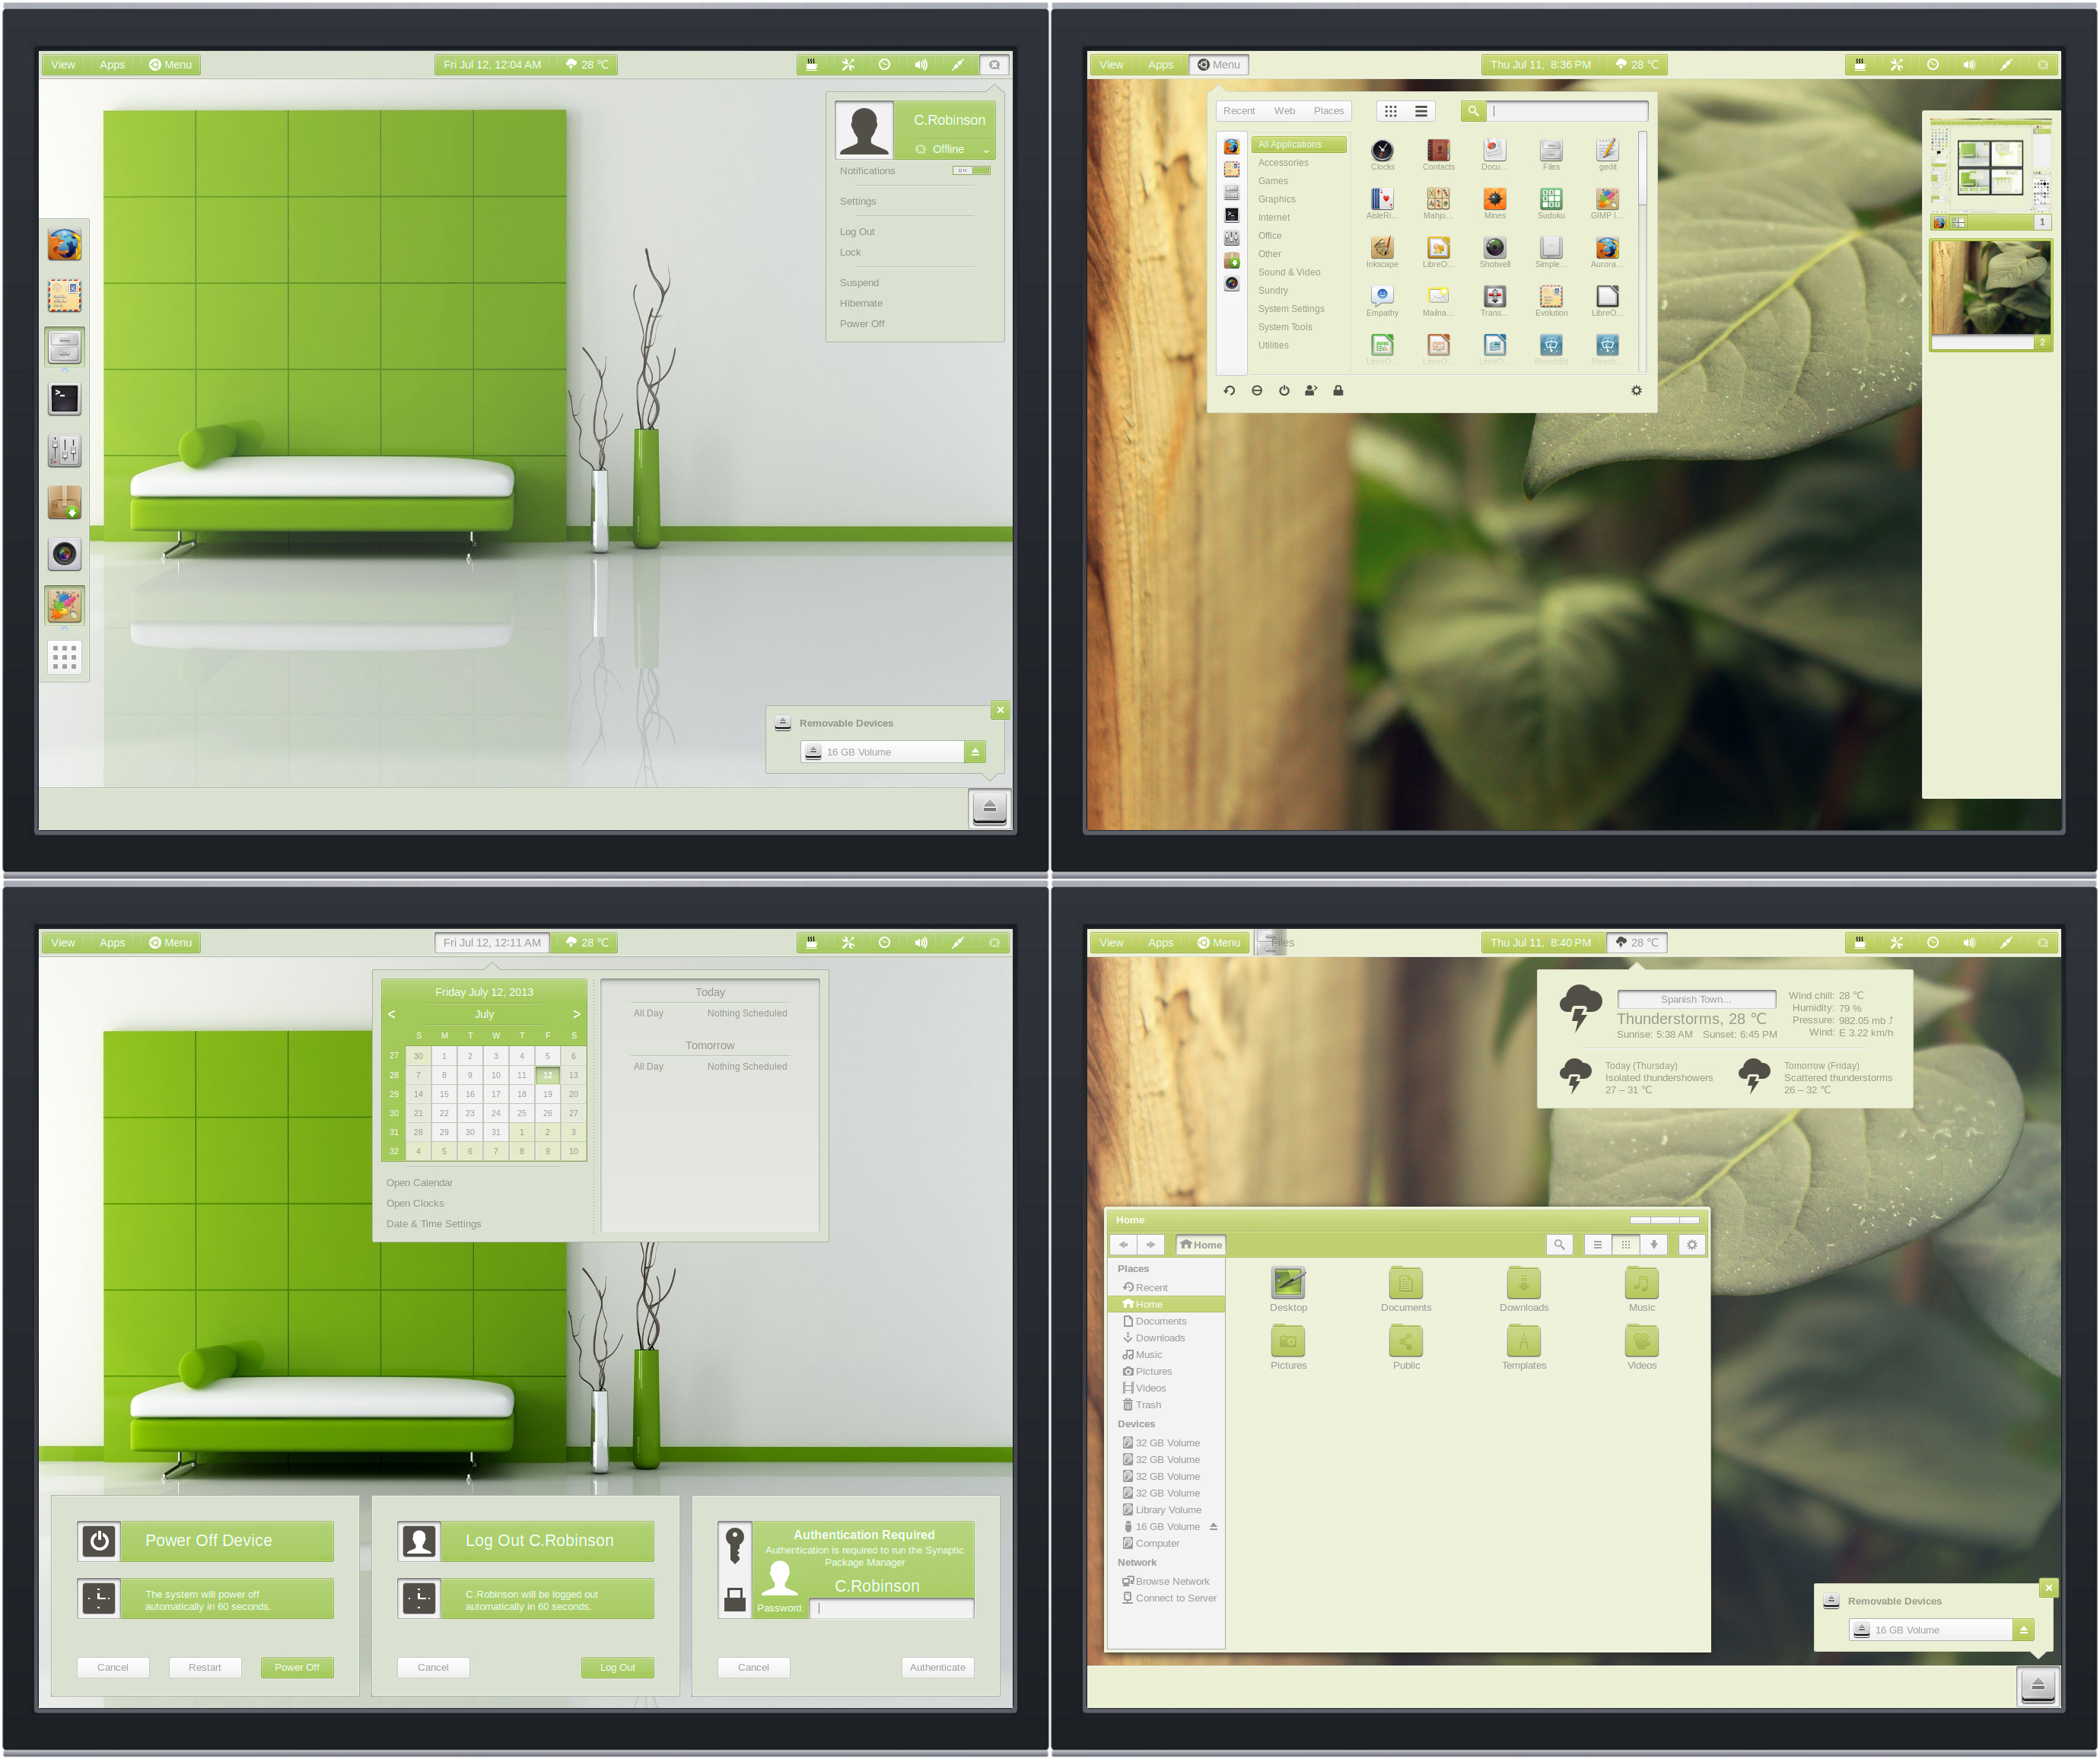 Gnome Shell 3.8  Panacea Green ( Lime and Olive )